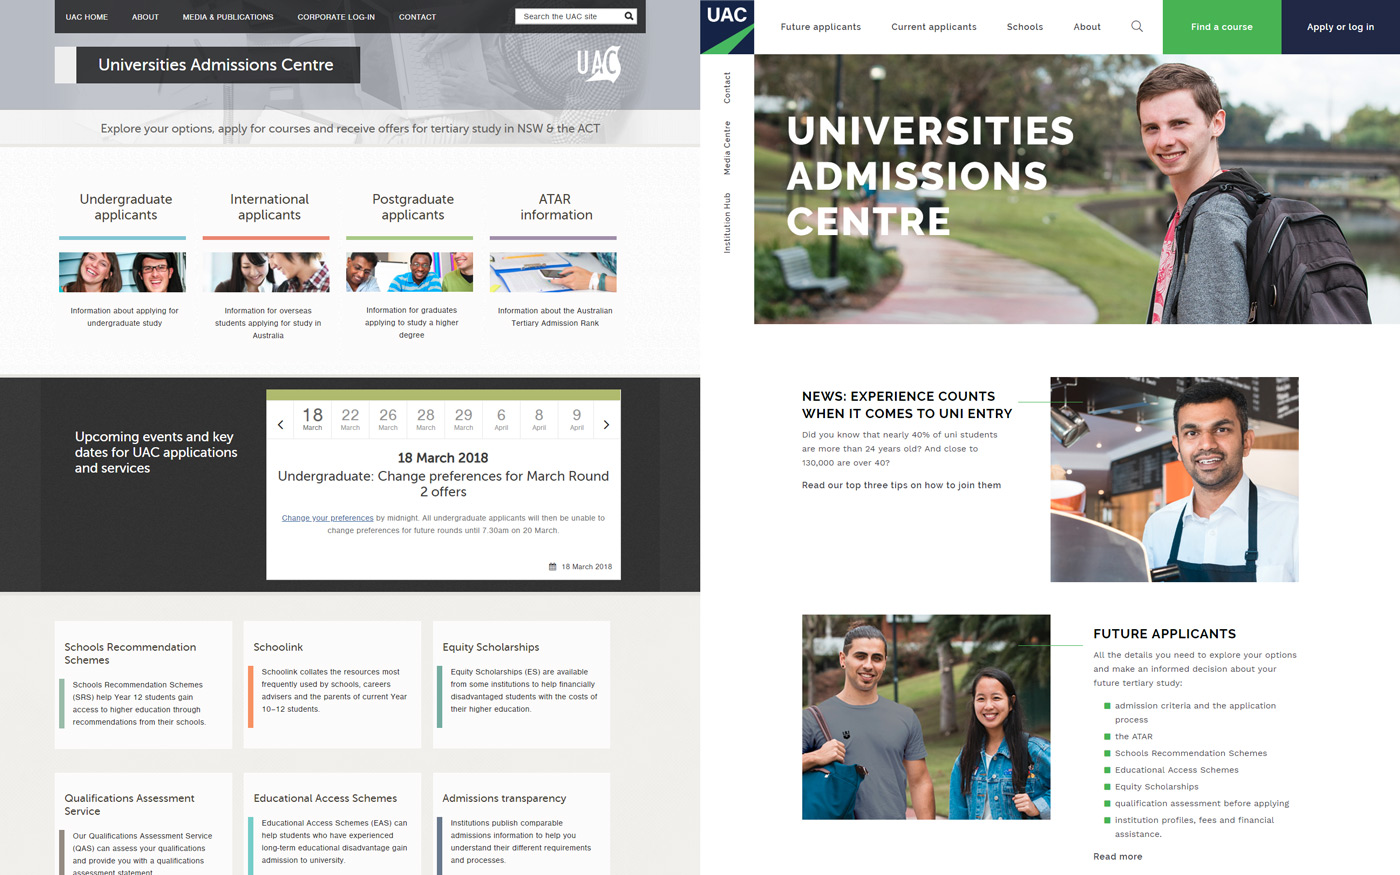 Universities Admissions Centre website home page before and after